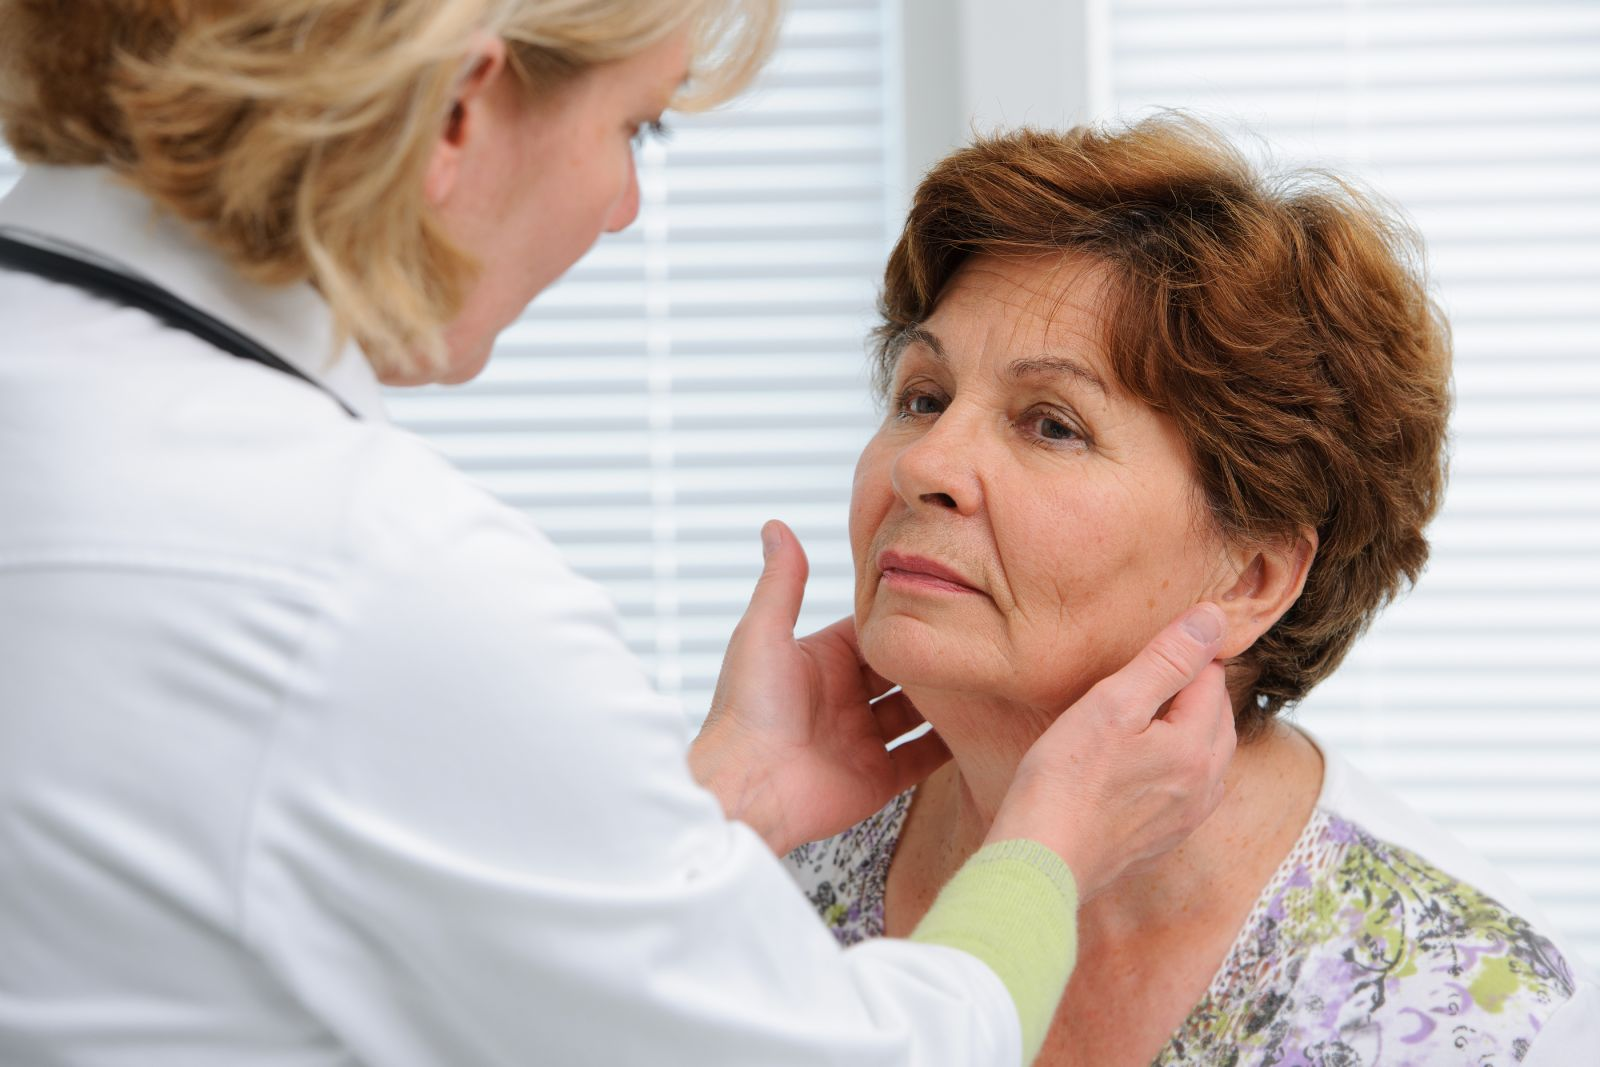 7 Common Hypothyroidism Causes